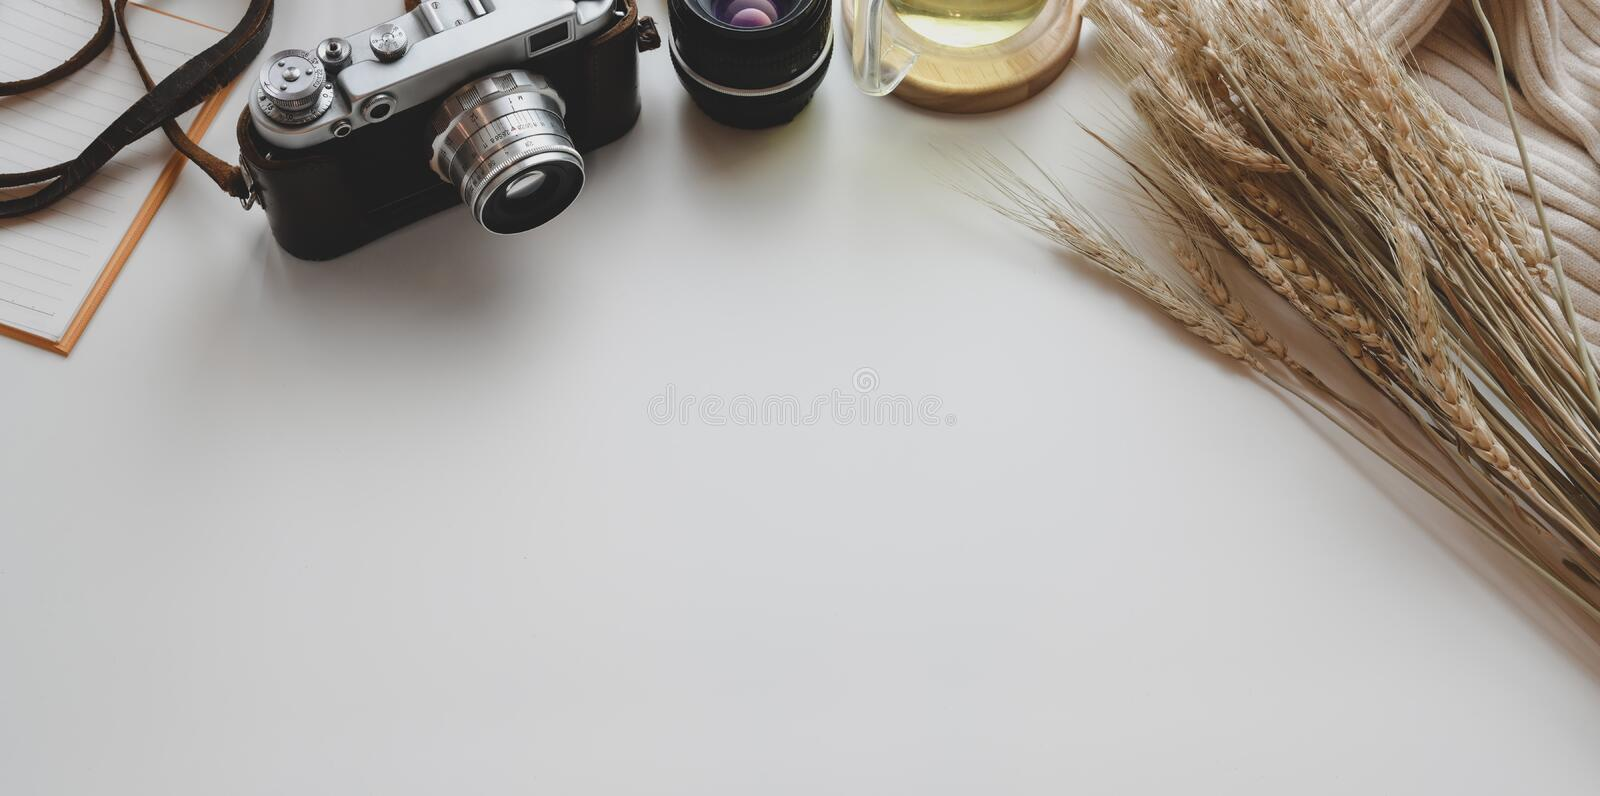 Overhead shot of minimal workplace with vintage camera and office supplies with decorations royalty free stock images